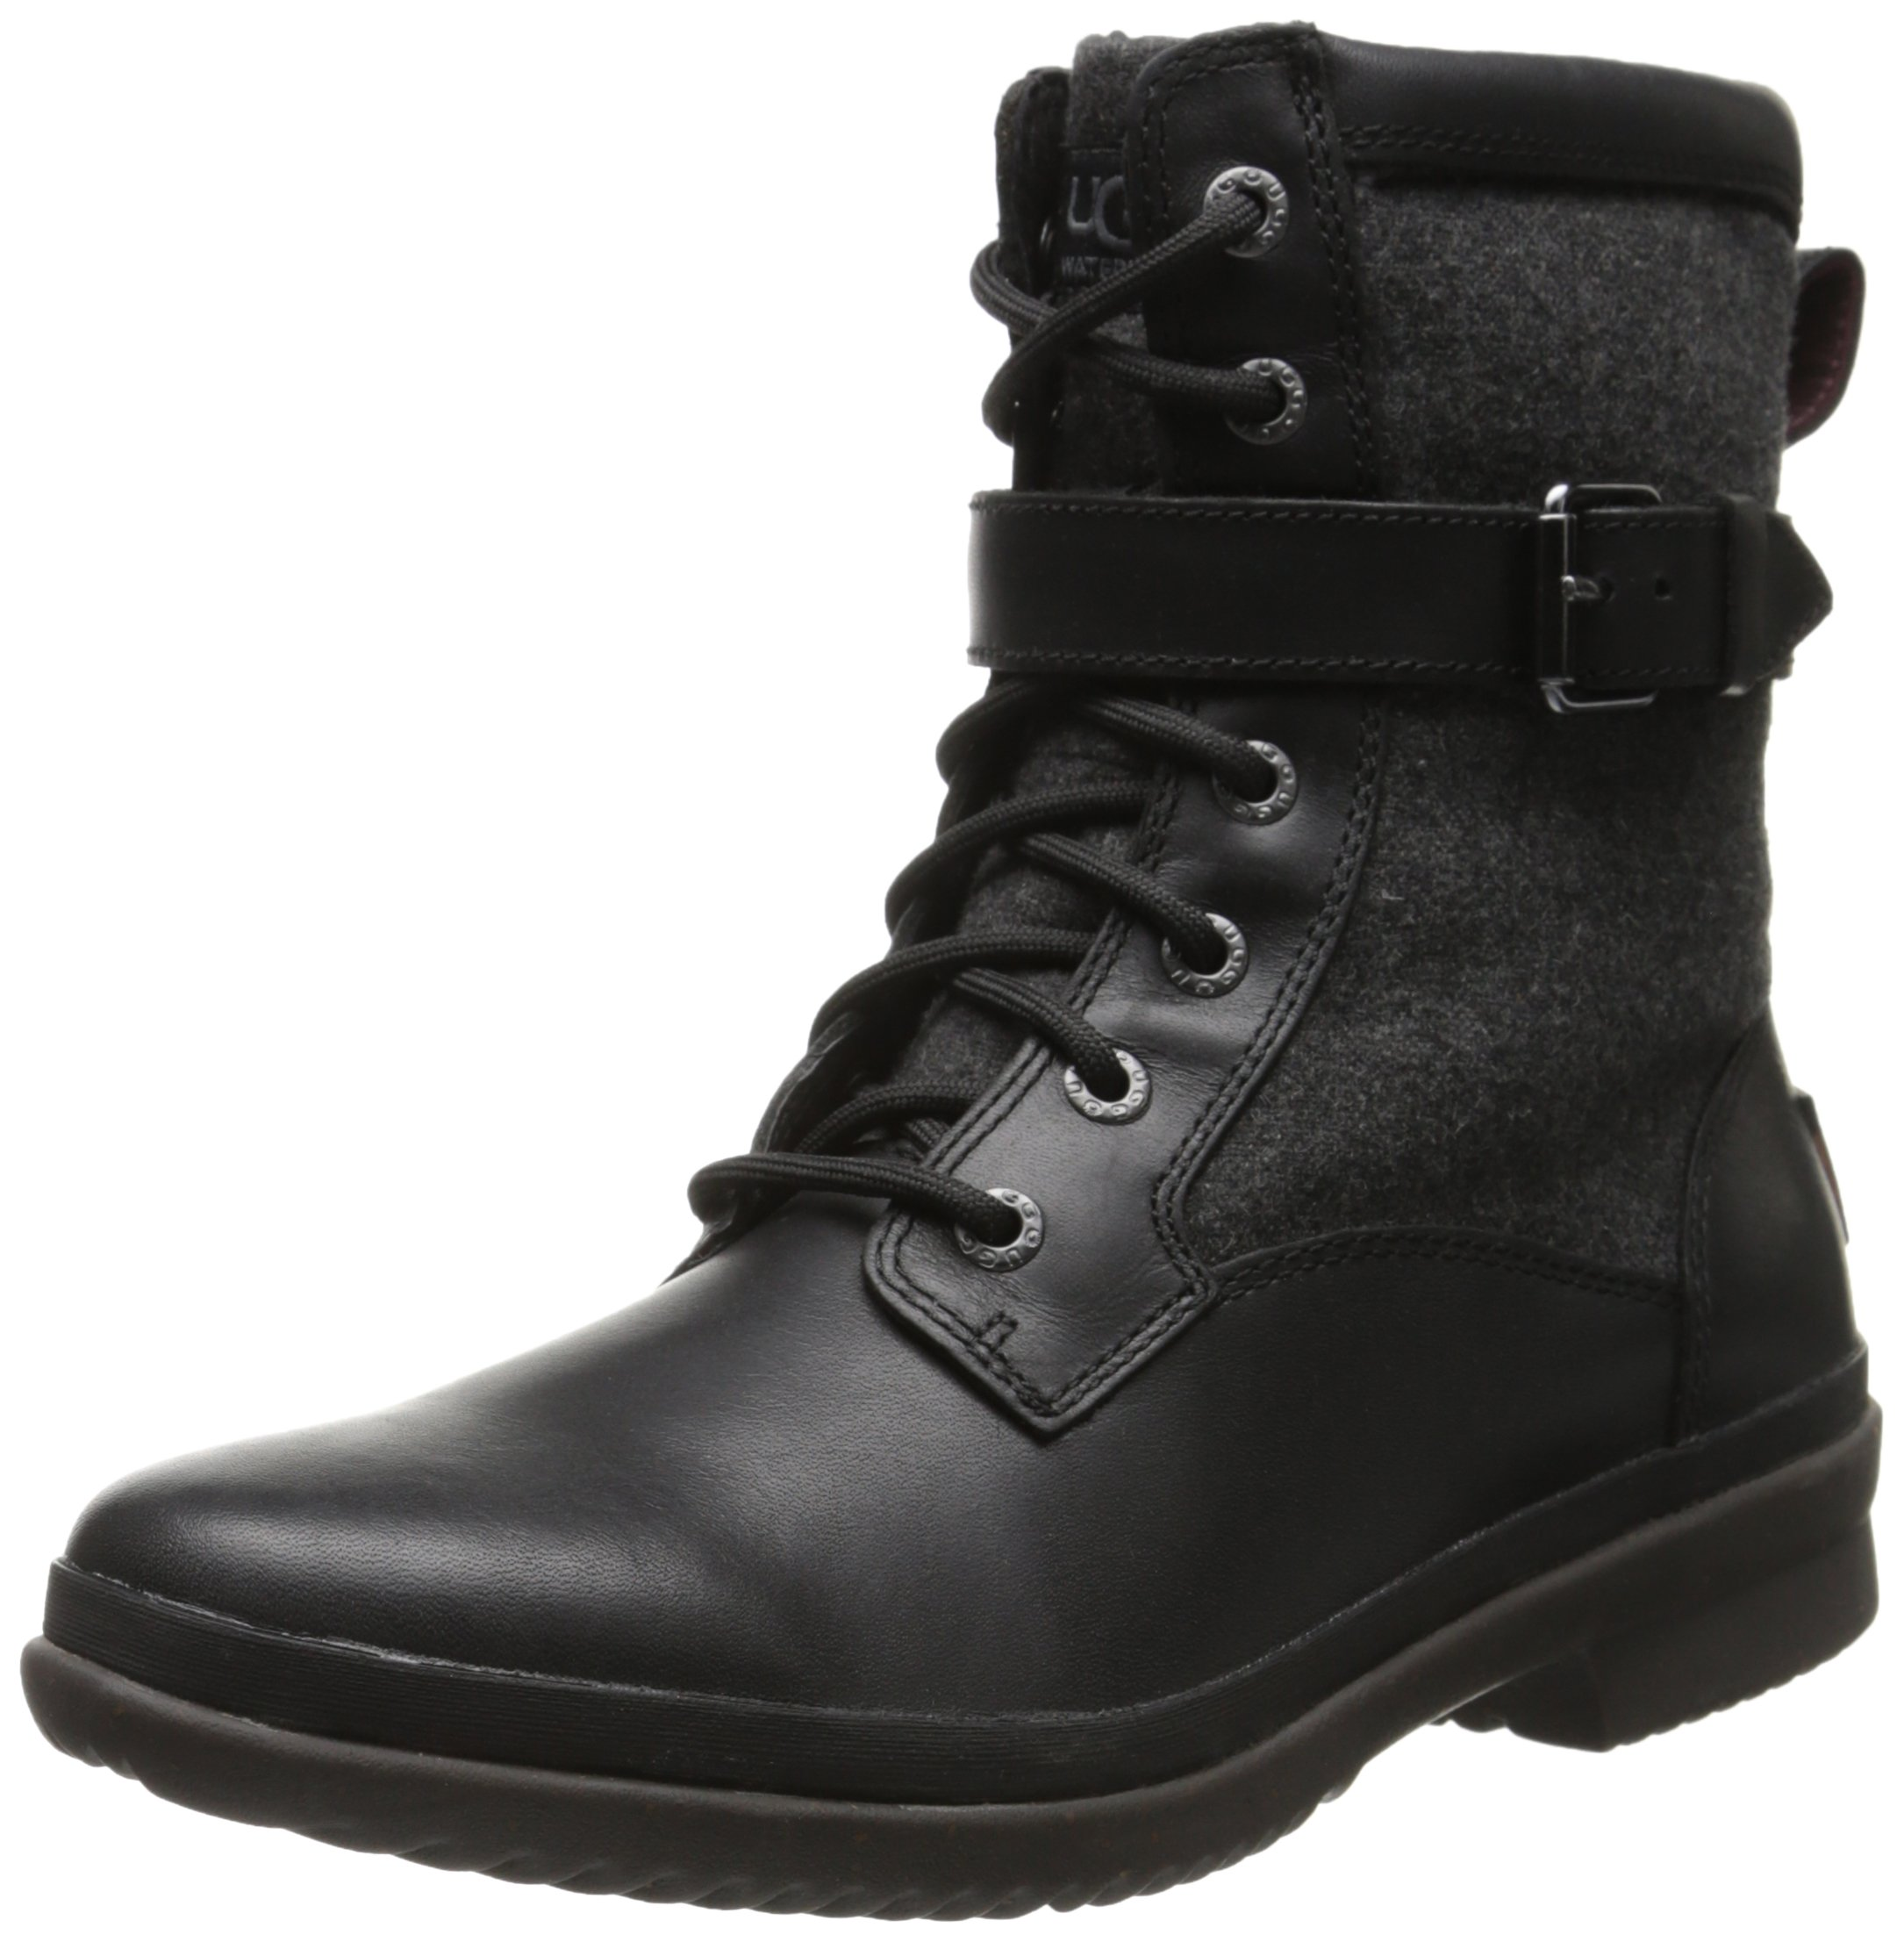 UGG Women's Kesey Boot, Black, 8.5 B US by UGG